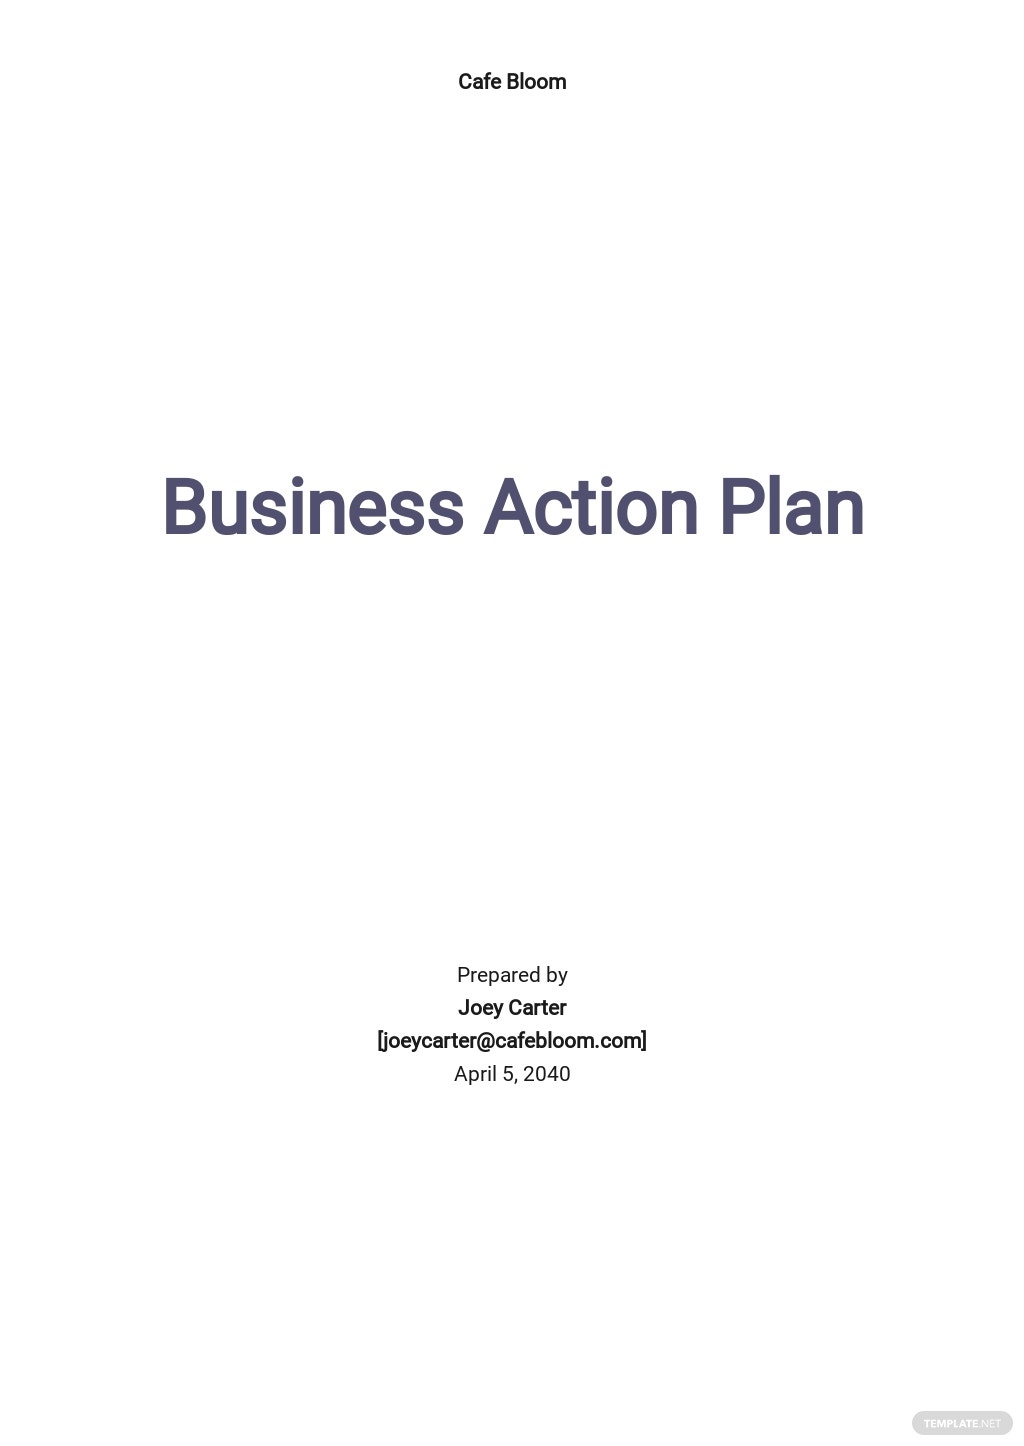 Business Action Plan Template.jpe